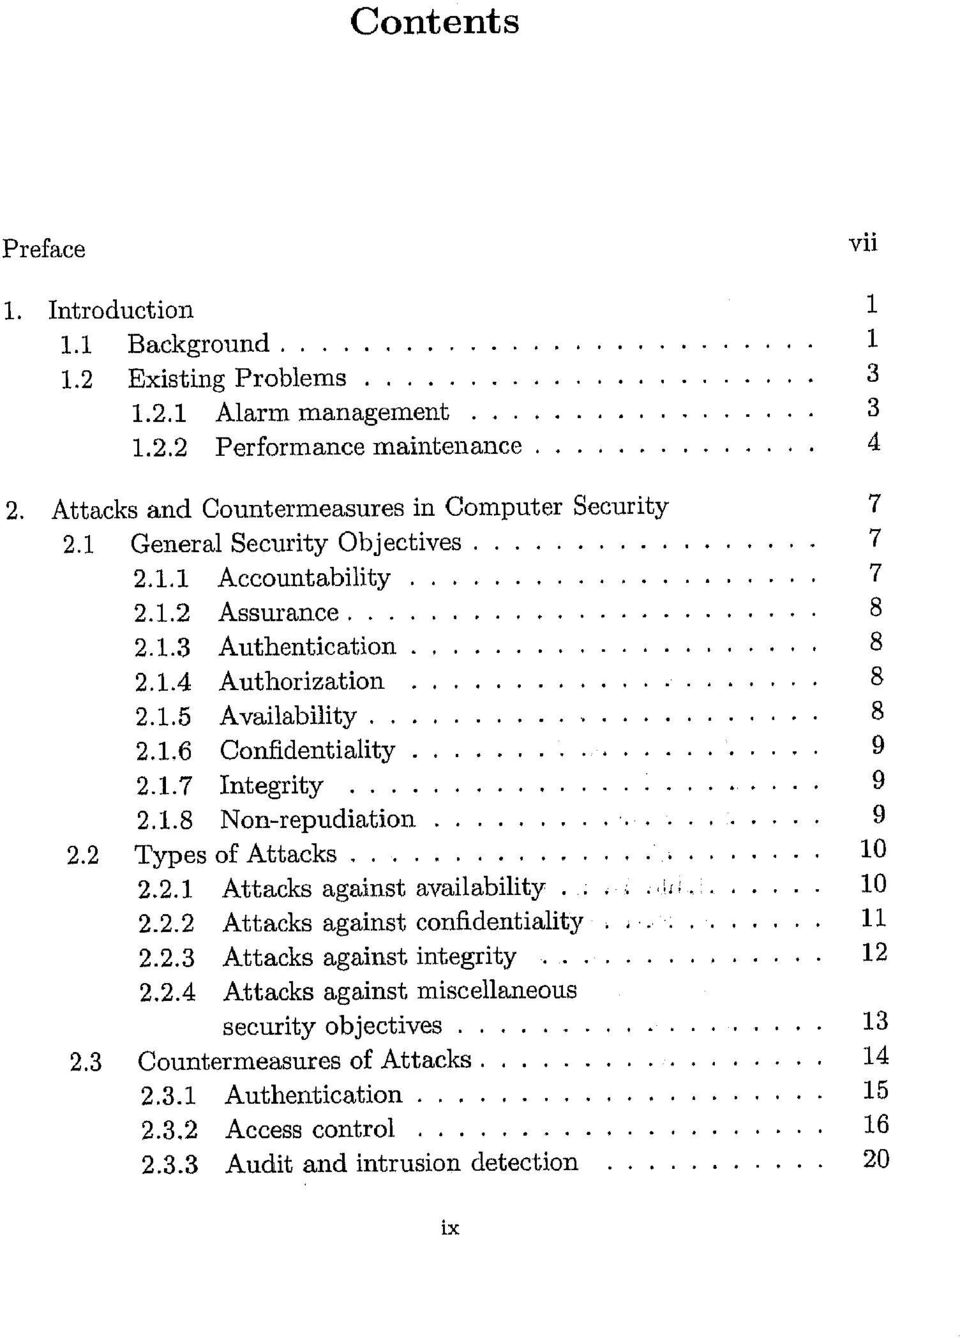 1.6 Confidentiality 9 2.1.7 Integrity 9 2.1.8 Non-repudiation 9 2.2 Types of Attacks 10 2.2.1 Attacks against availability.... 10 2.2.2 Attacks against confidentiality... 11 2.2.3 Attacks against integrity 12 2.